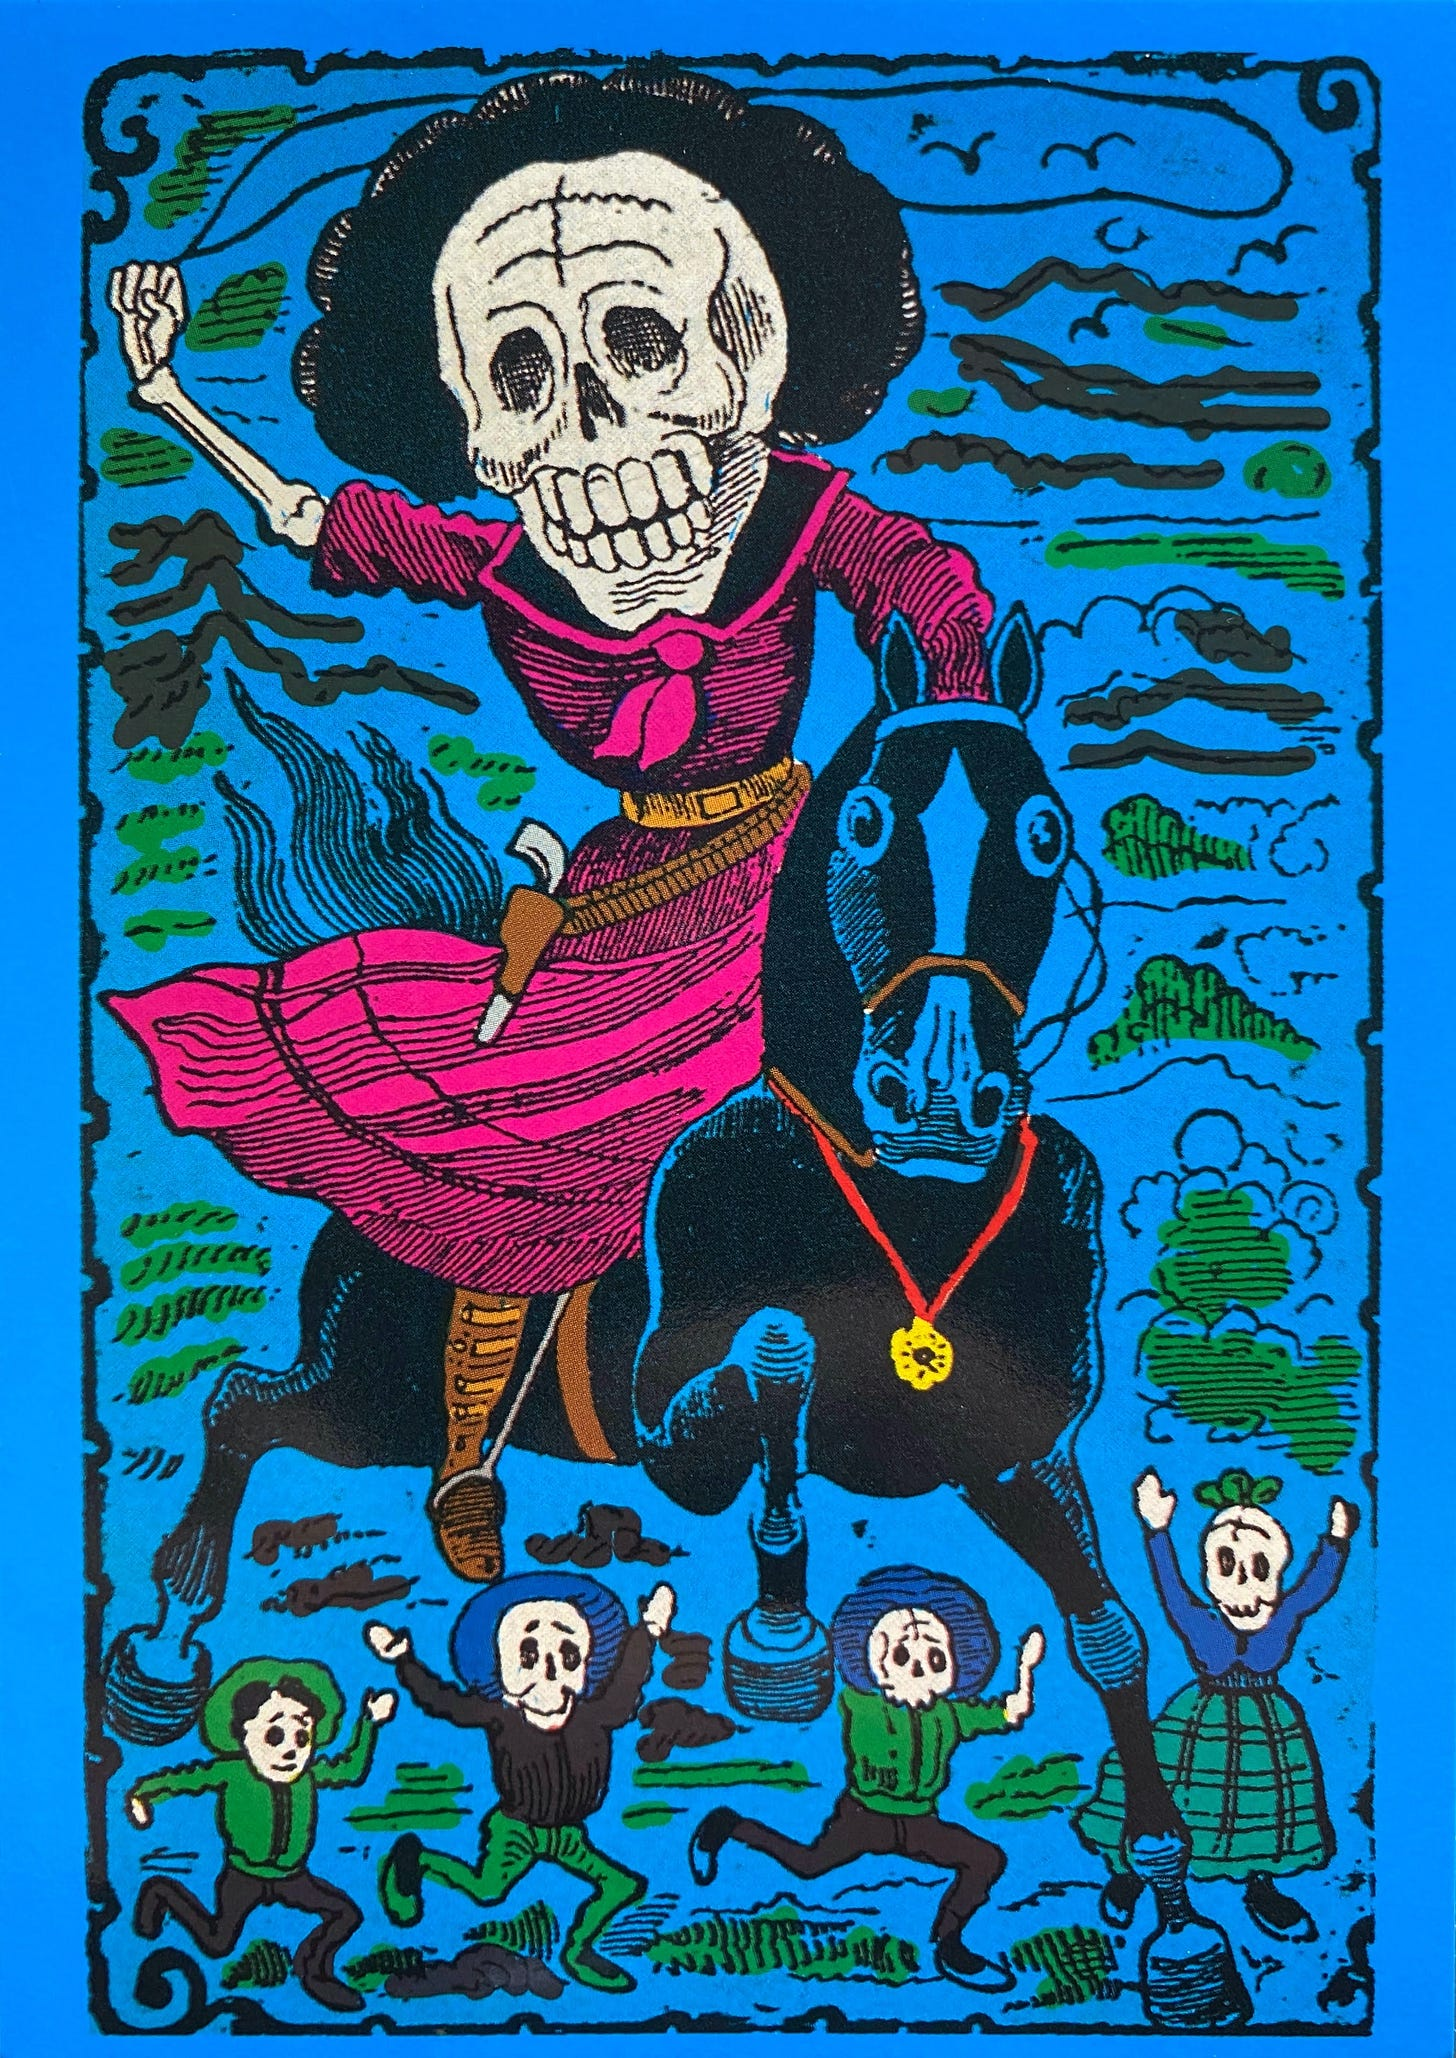 A skeleton wearing a dress with a holster on their hip with a revolver, while riding a black horse with a medal on it's chest. The rider is cheered by 4 skeletons, with their arms raised.